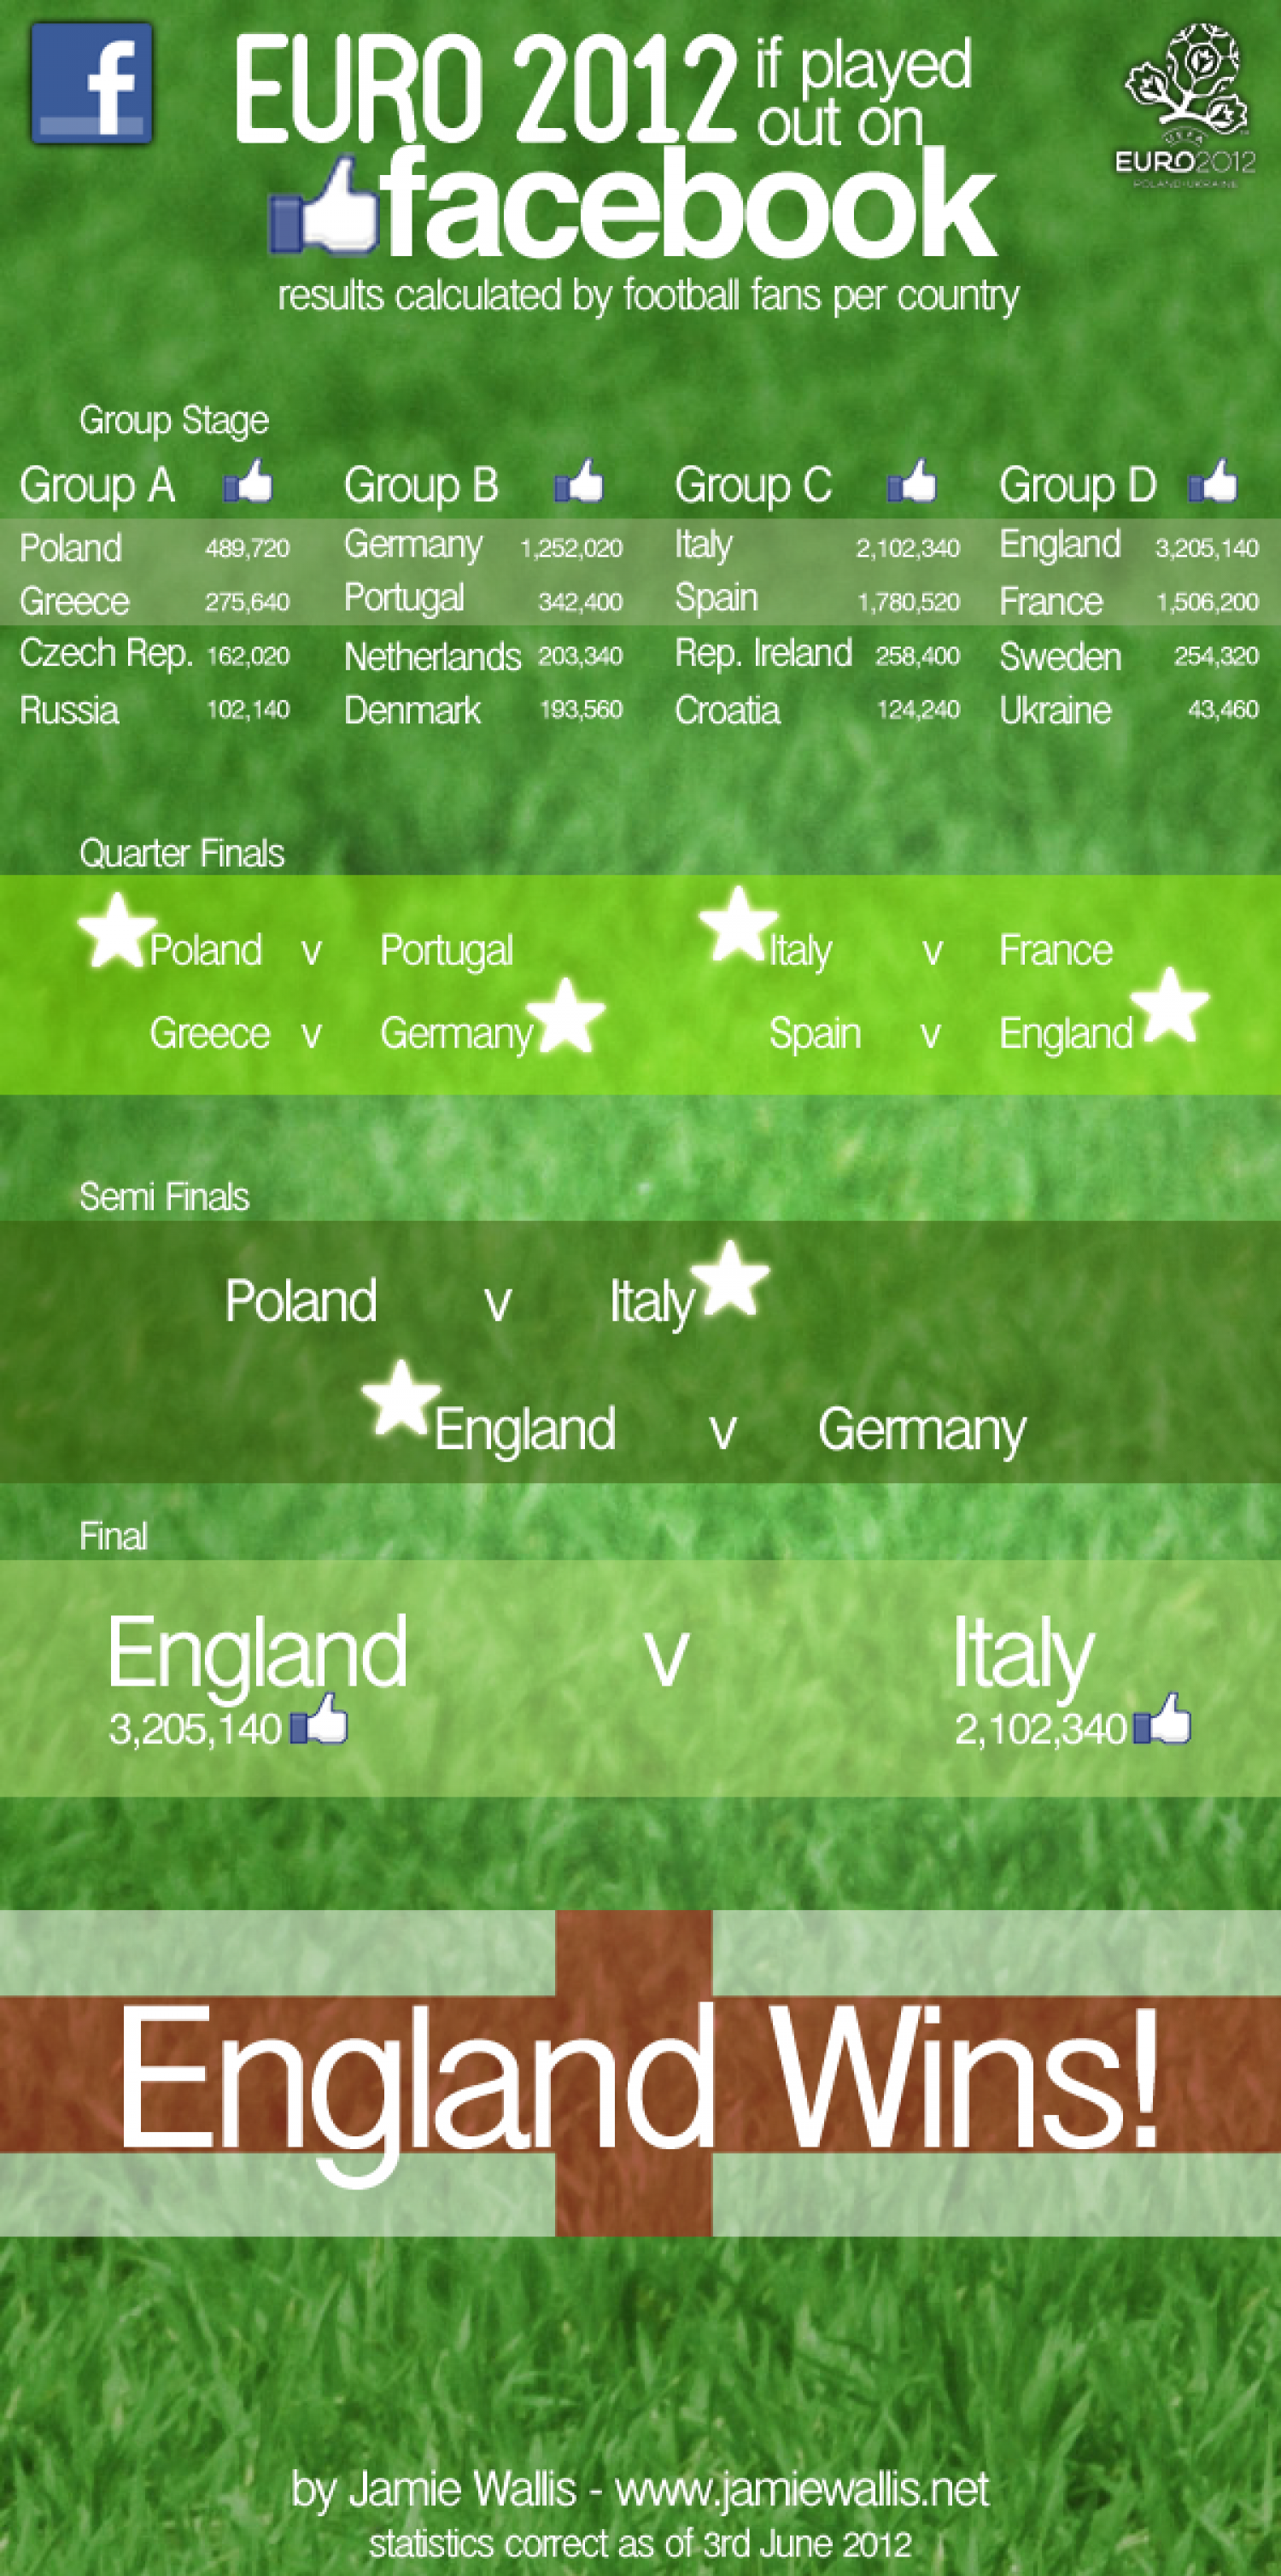 Euro 2012 if played out on Facebook Infographic